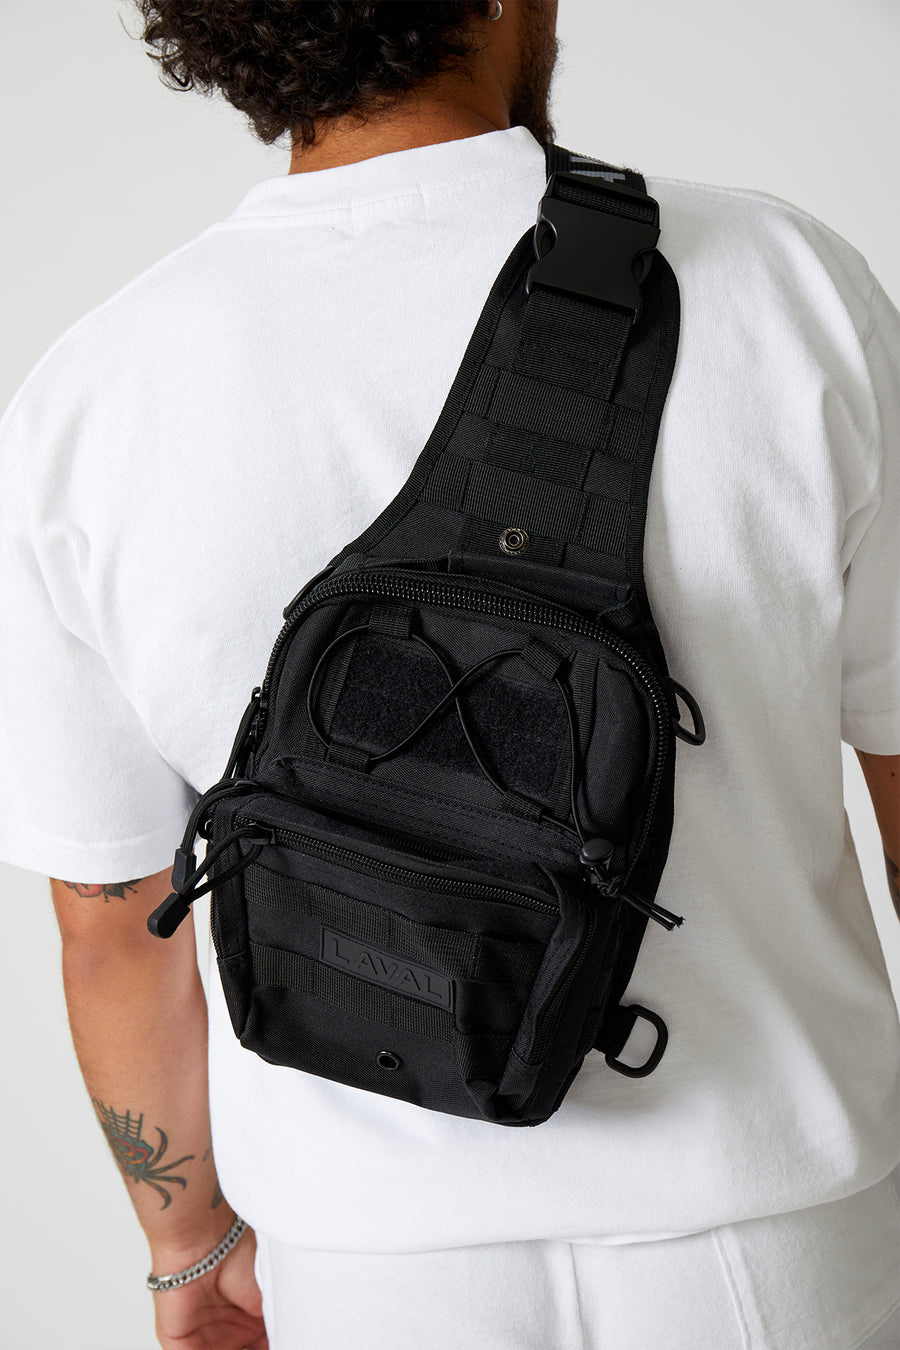 THE CROSS BODY BACKPACK